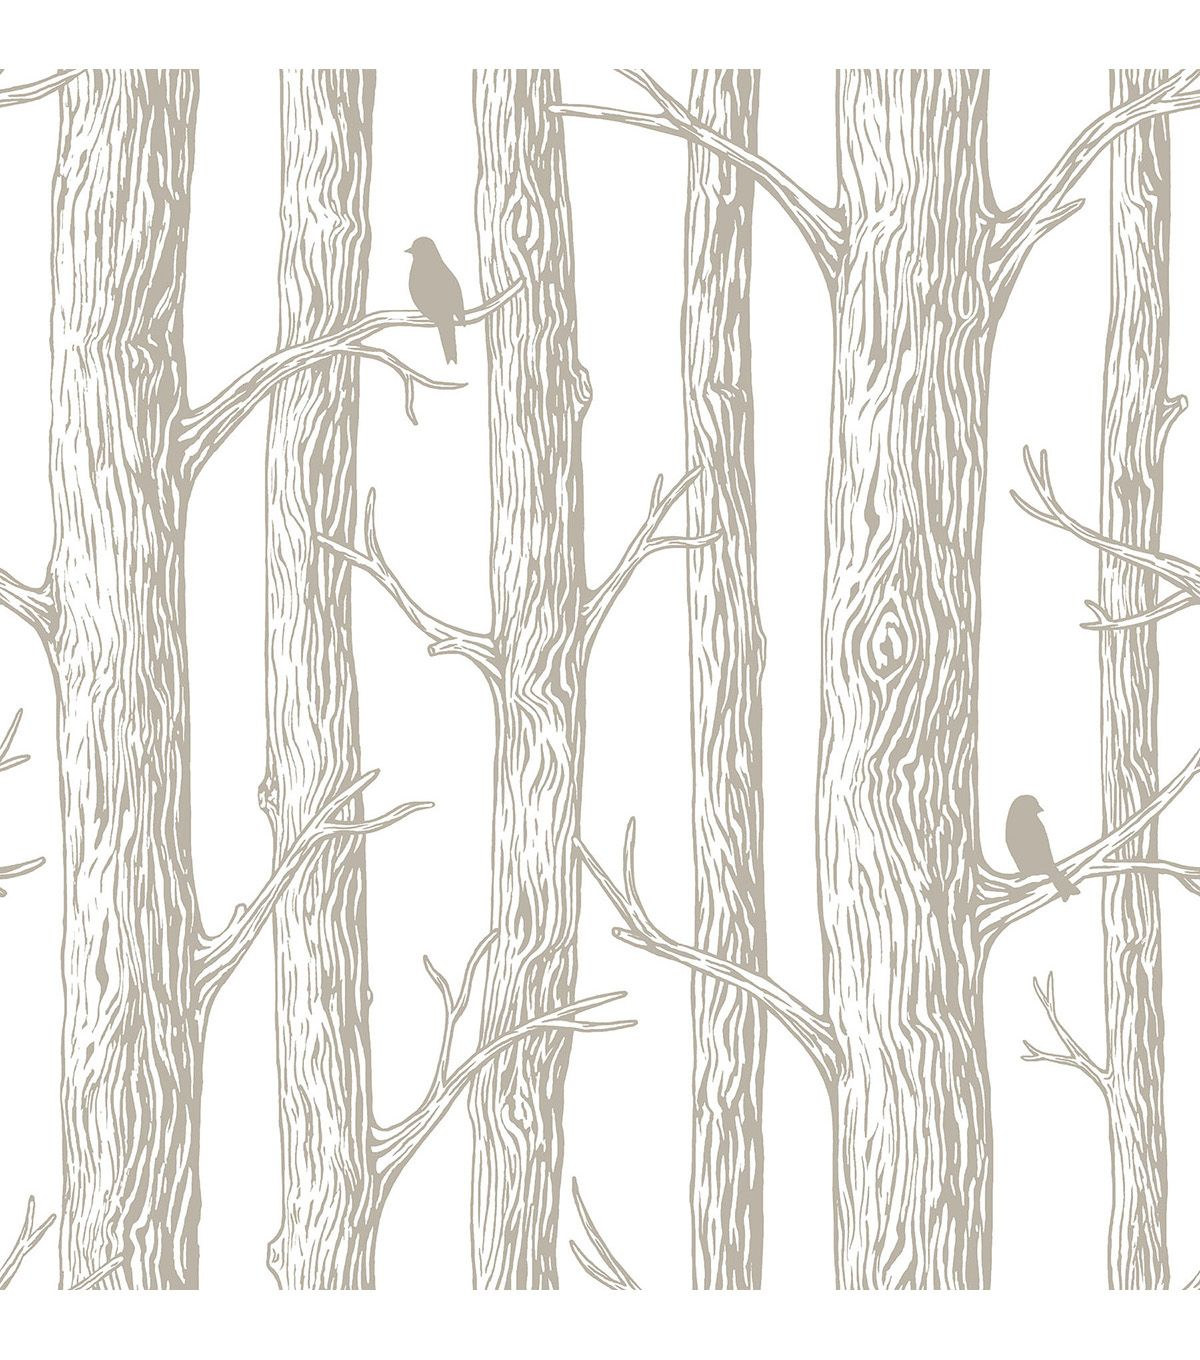 Wallpops Nuwallpaper The Forest Peel And Stick Wallpaper Joann Jo Ann Nuwallpaper Birch Tree Wallpaper Tree Wallpaper